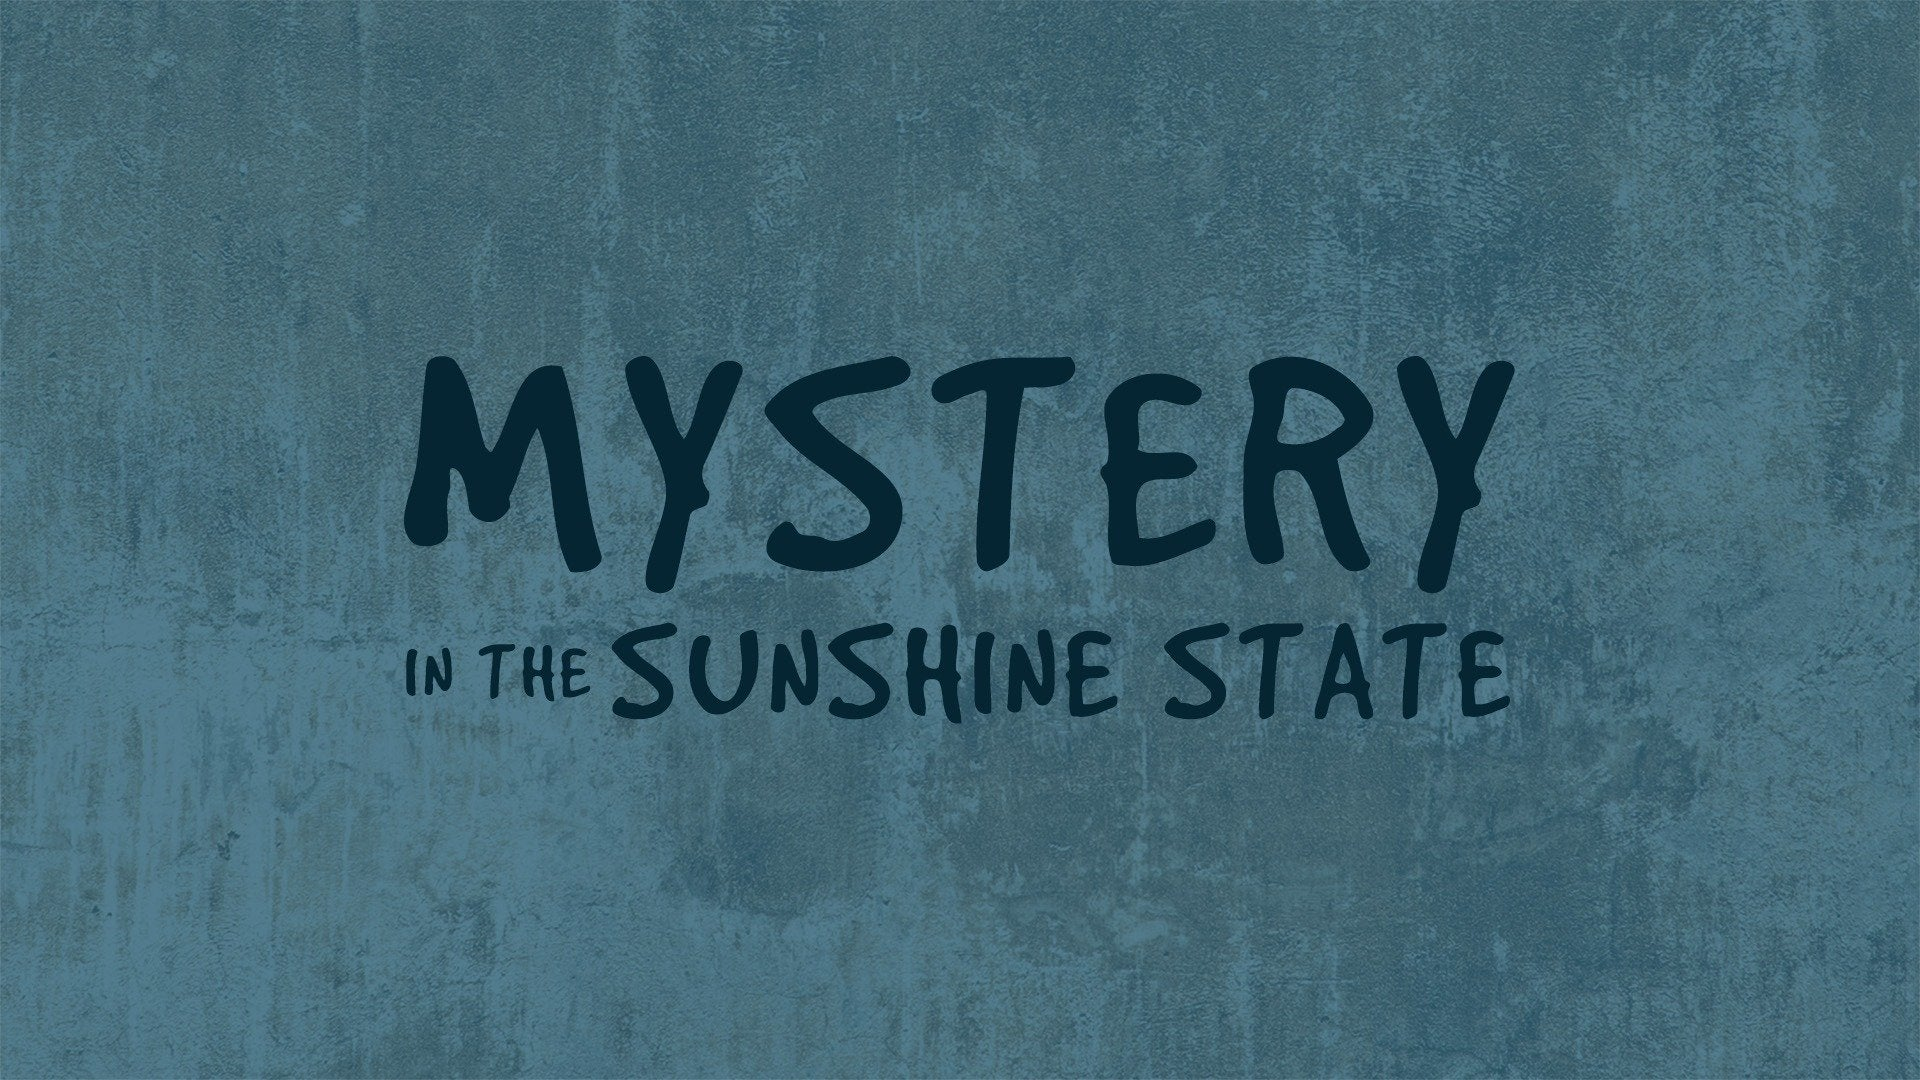 Mystery in the Sunshine State